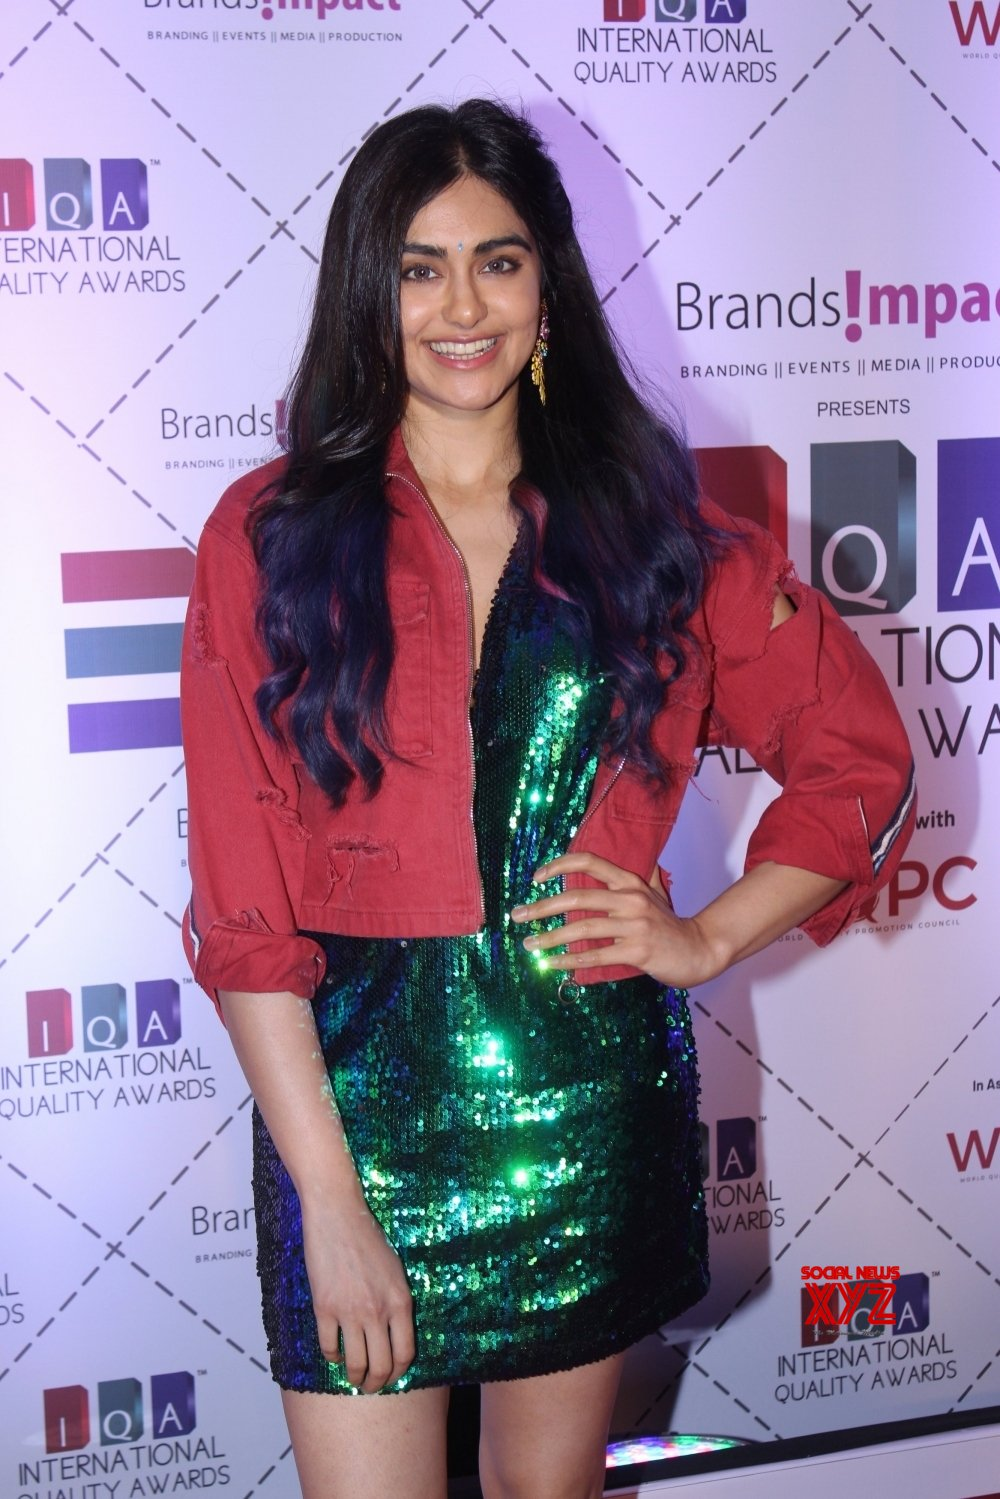 Mumbai: 2019 International Quality Awards #Gallery